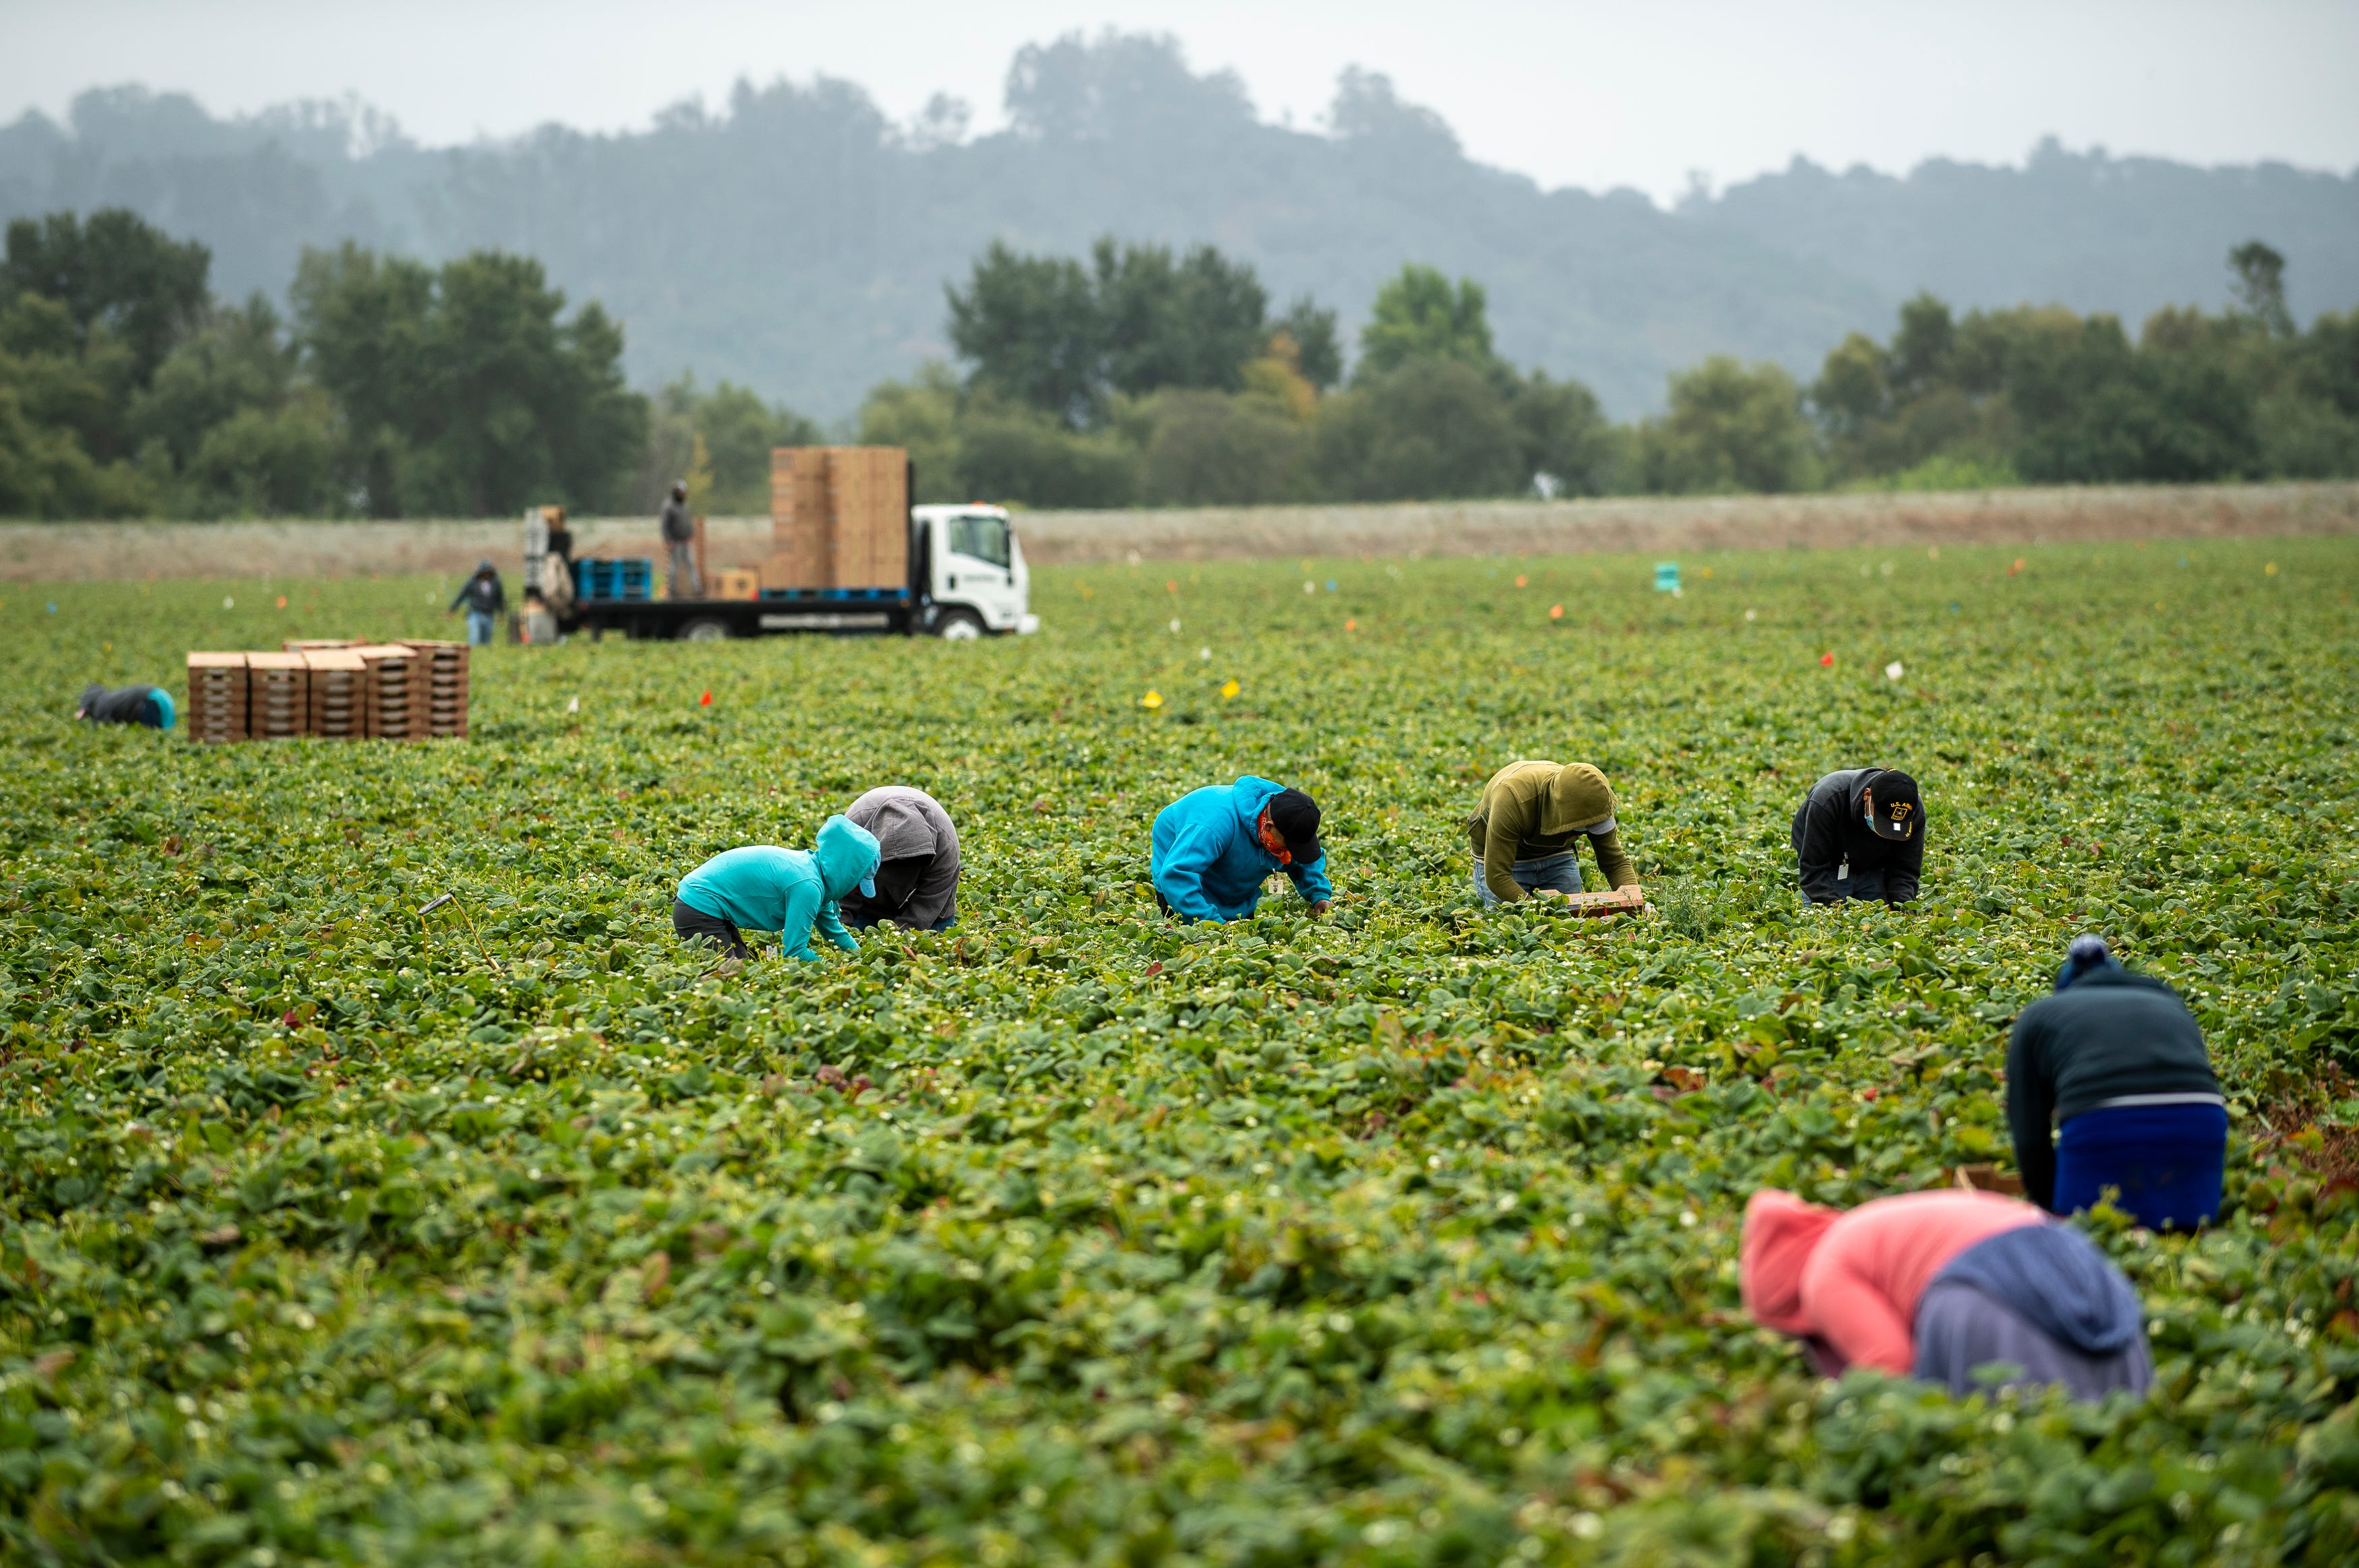 A row of five farmworkers pick strawberries in synchrony  near two others in Watsonville, Calif. All of them are wearing long sleeves to protect their skin from the elements.